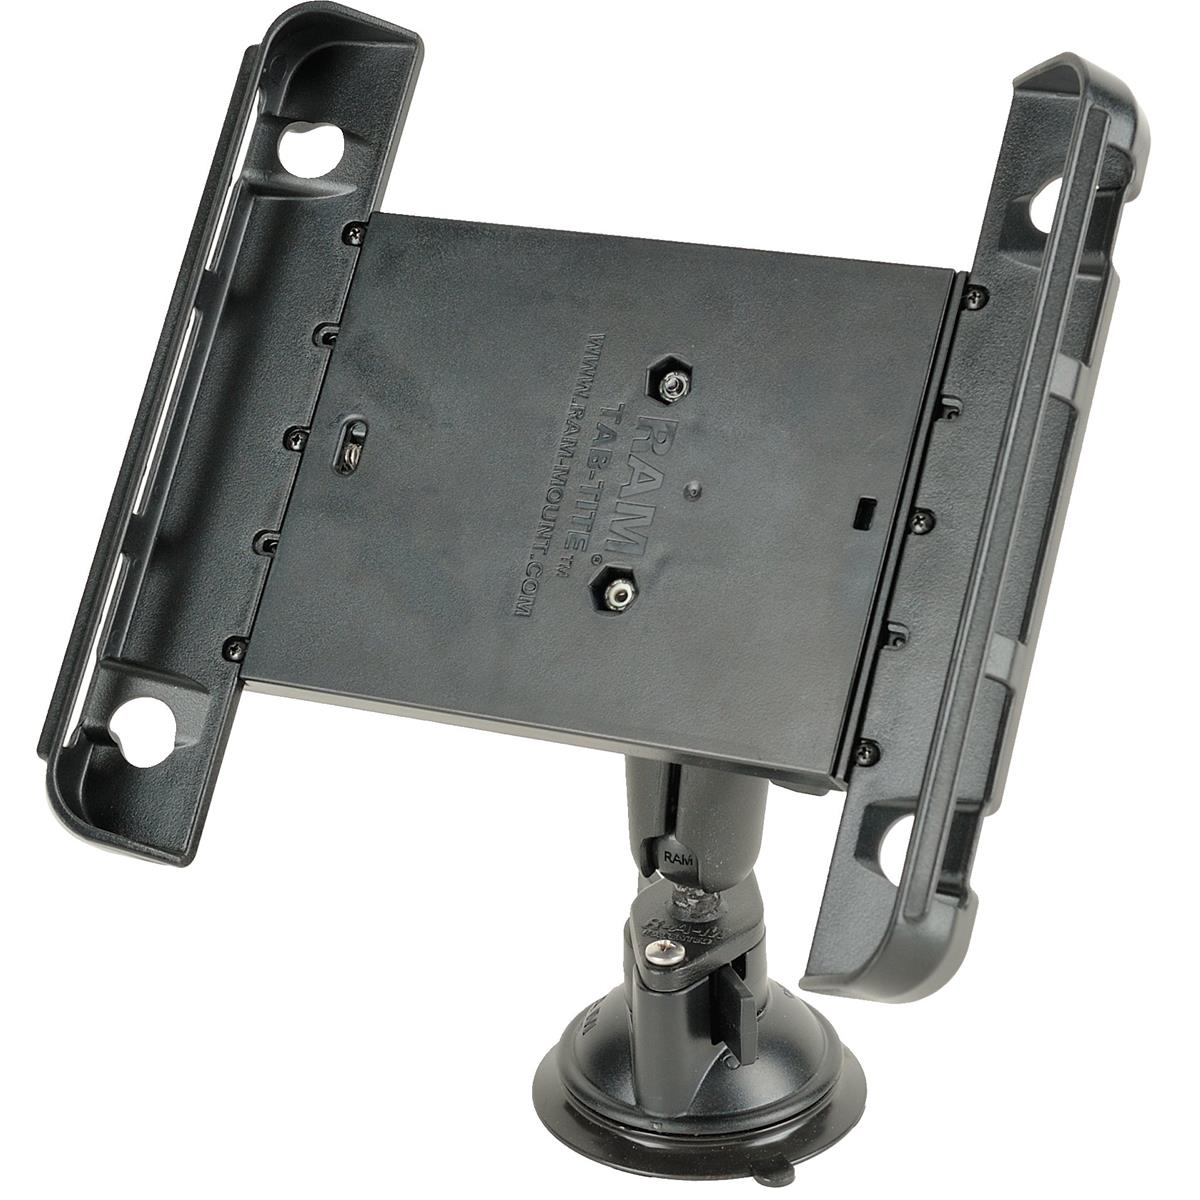 "Tablet Mount for 10"" Tablets"